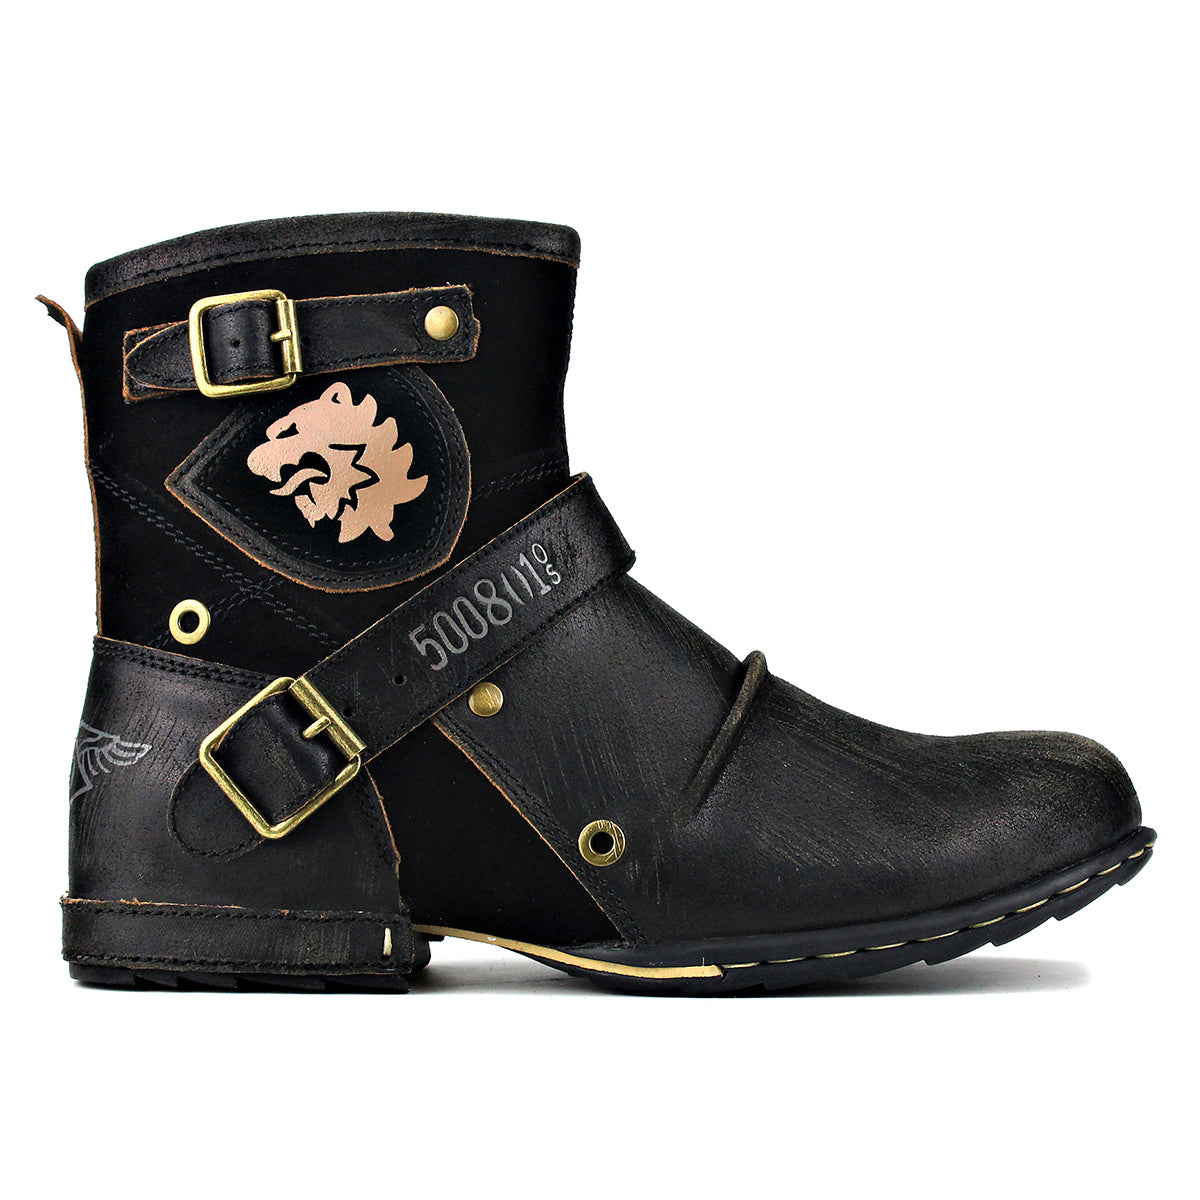 Wiipop Genuine Leather Zipper-up Men's Ankle Boots